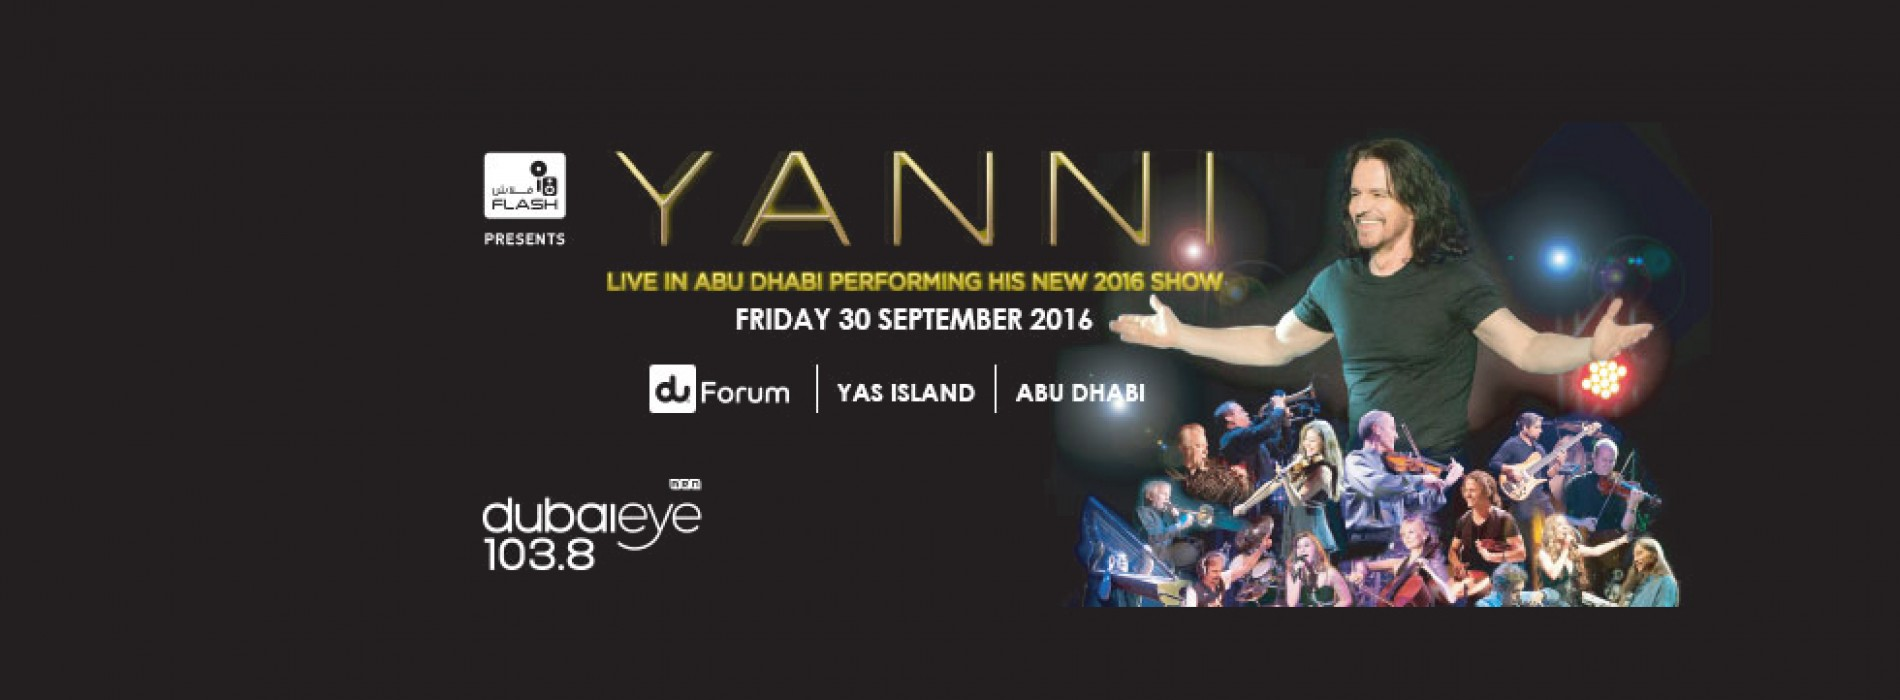 Yanni set to scintillate Abu Dhabi with his brand new live performance